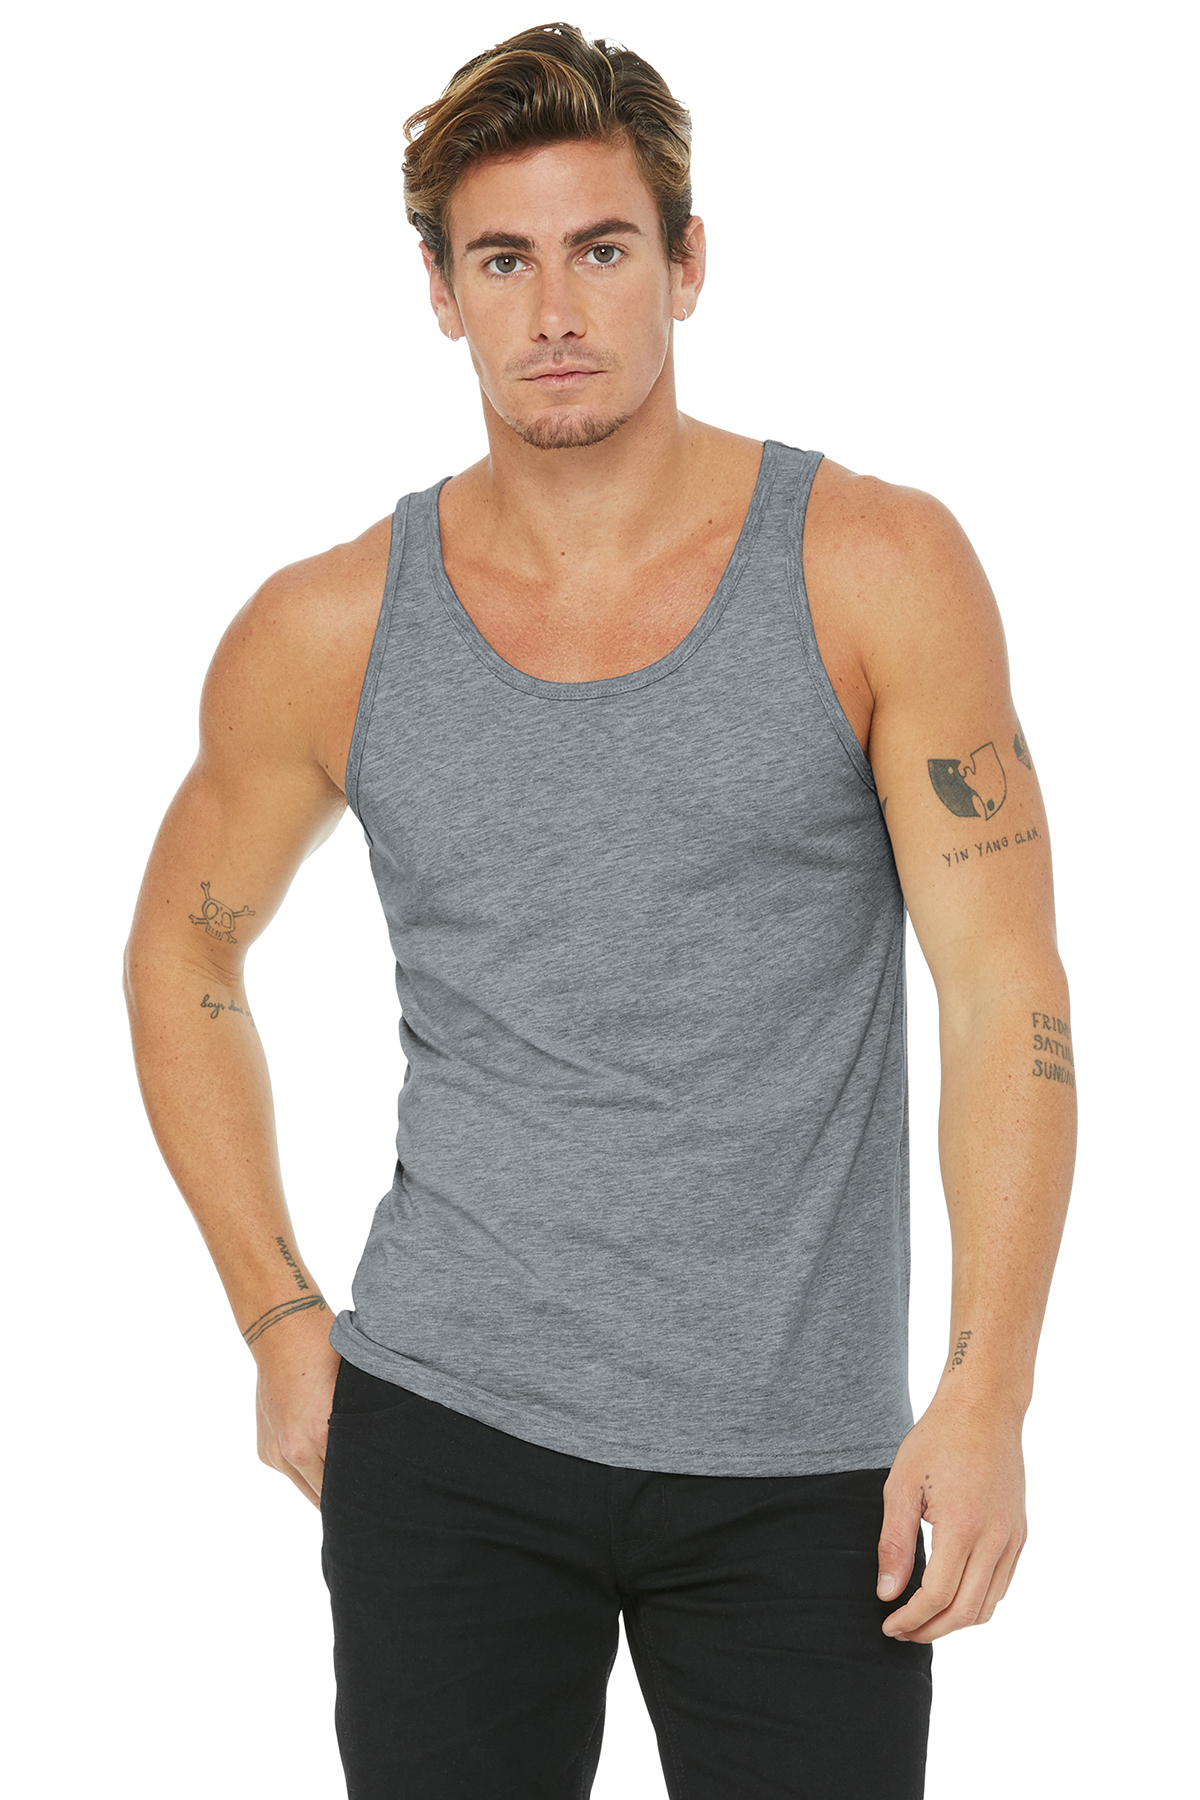 Bella Canvas 3480 Unisex Jersey Tank from NYFifth